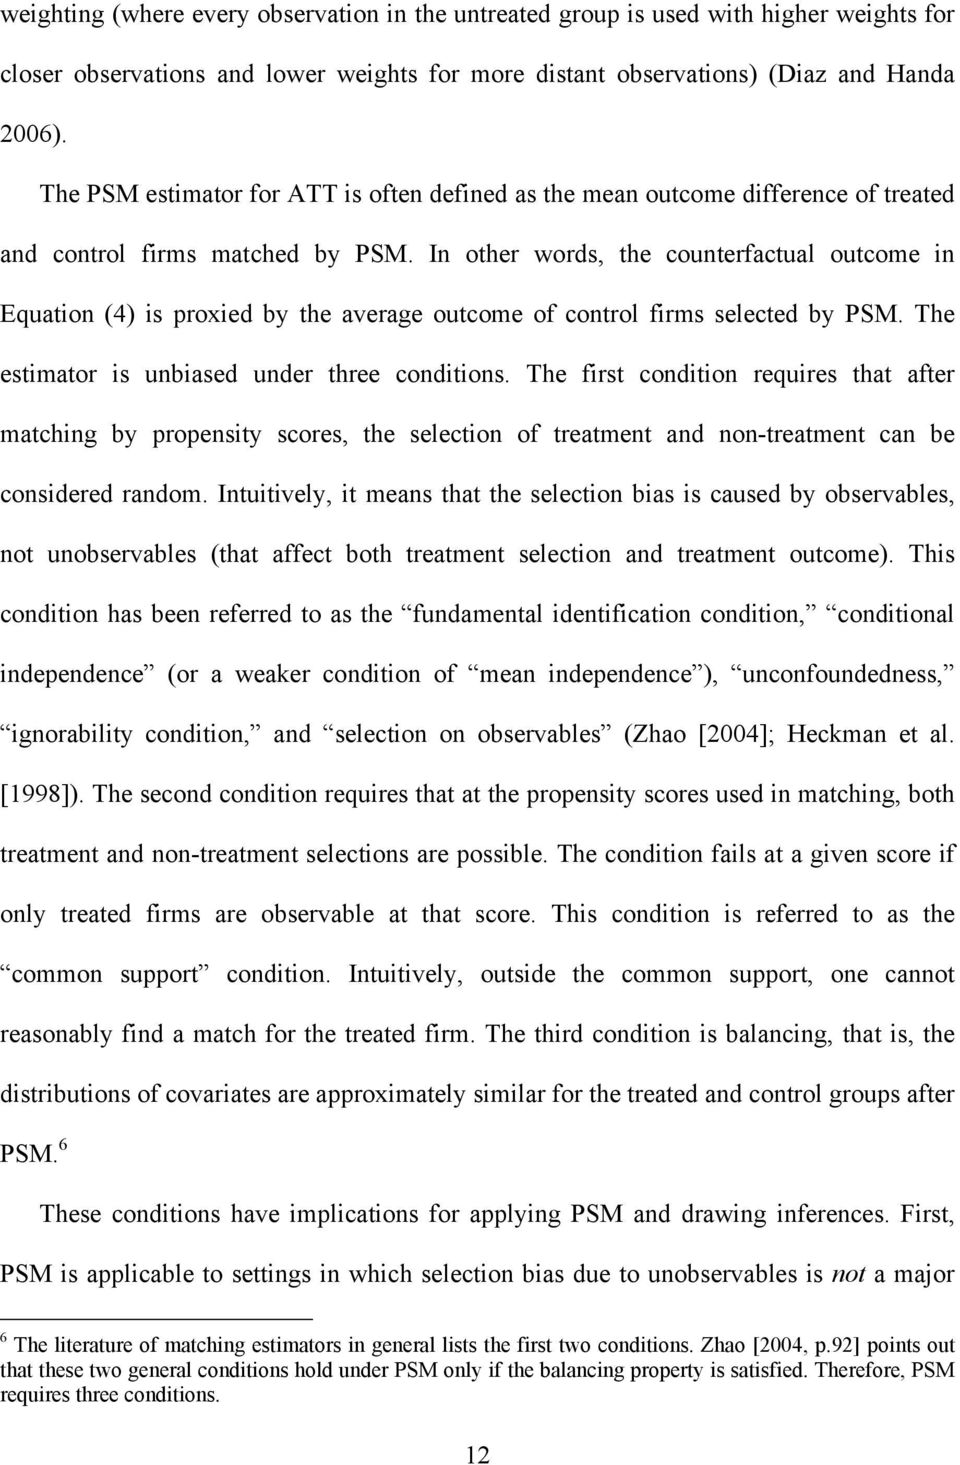 In other words, the counterfactual outcome n Equaton (4) s proxed by the average outcome of control frms selected by PSM. The estmator s unbased under three condtons.